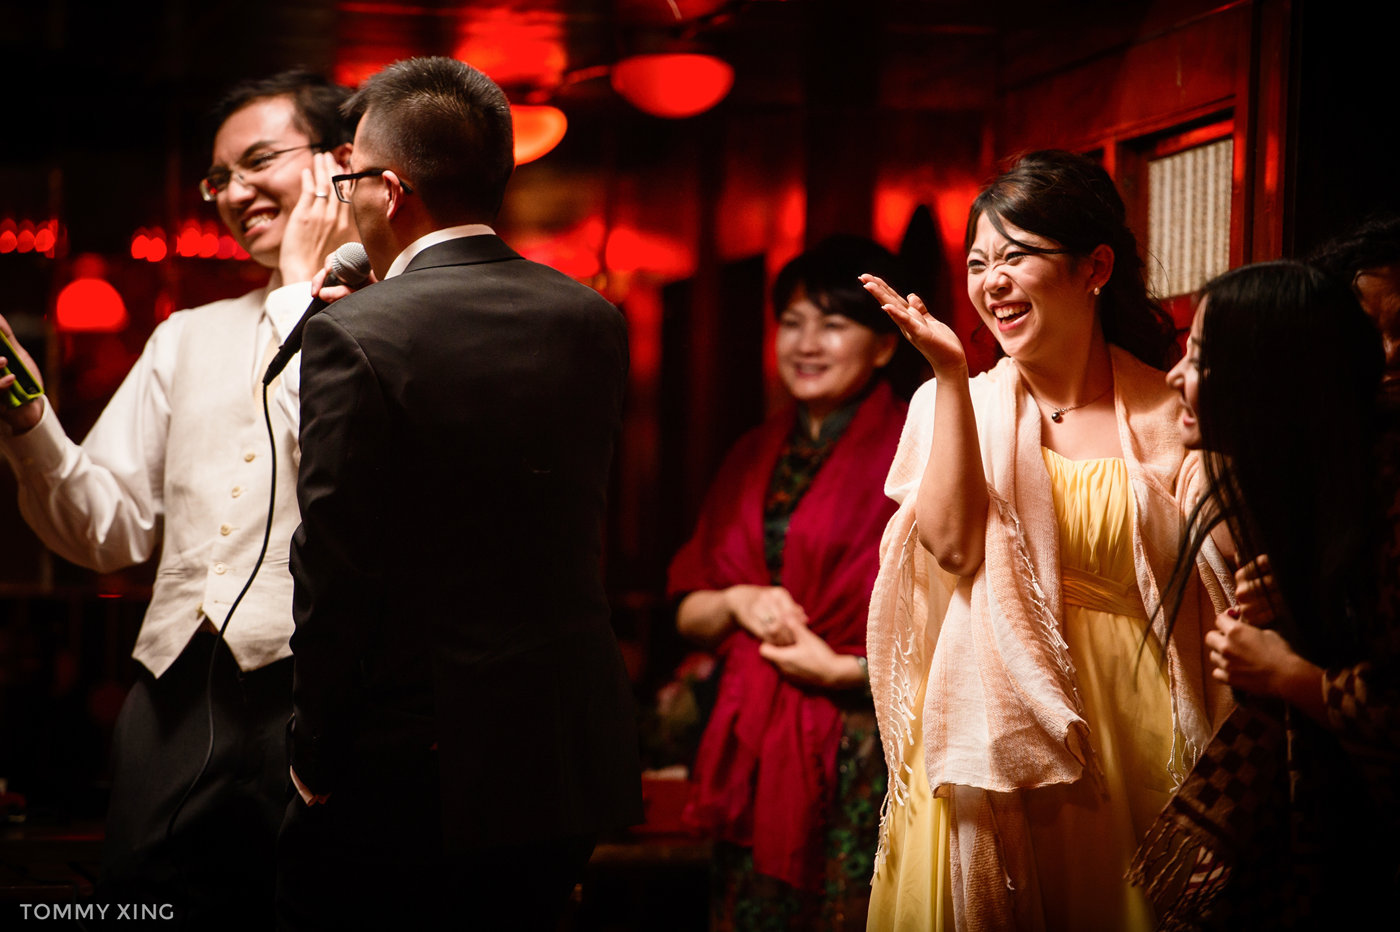 Seattle Wedding and pre wedding Los Angeles Tommy Xing Photography 西雅图洛杉矶旧金山婚礼婚纱照摄影师 209.jpg